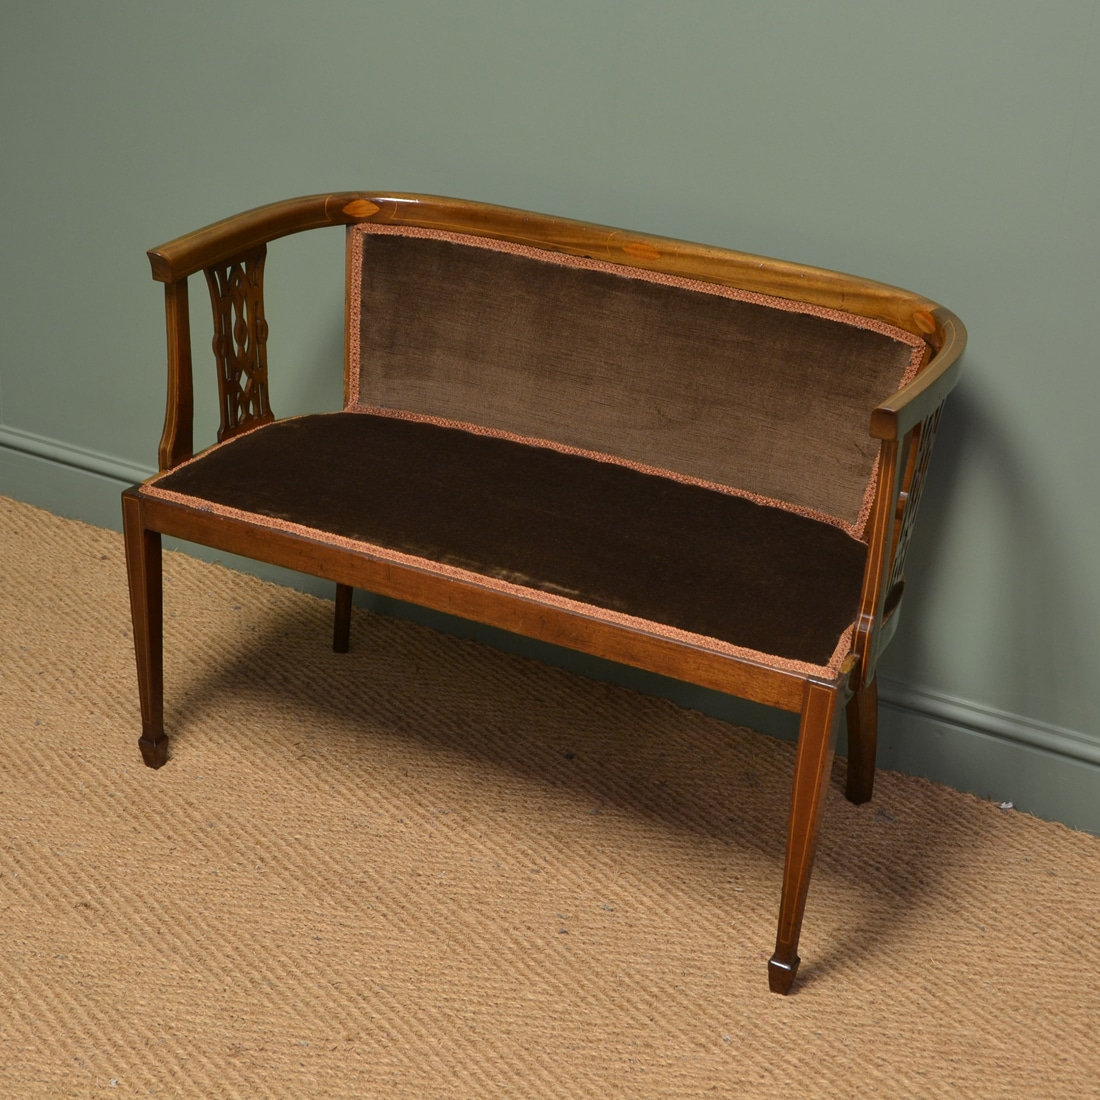 Elegant Edwardian Small Mahogany Antique Salon Settee